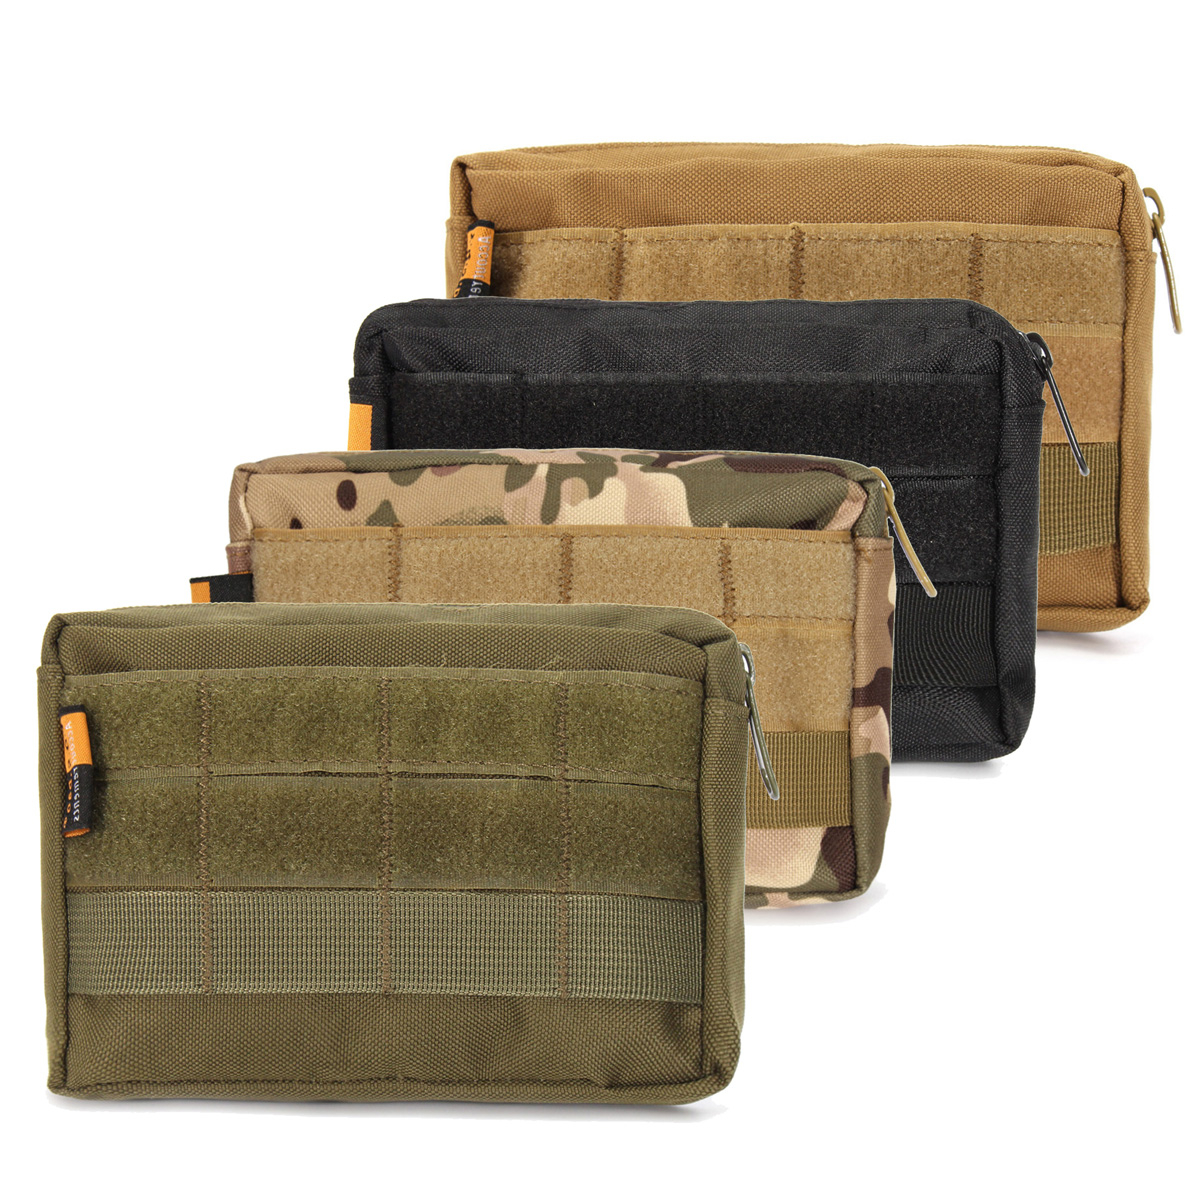 Waterproof Waist Pouch Bag Pack Military Tactical Campi